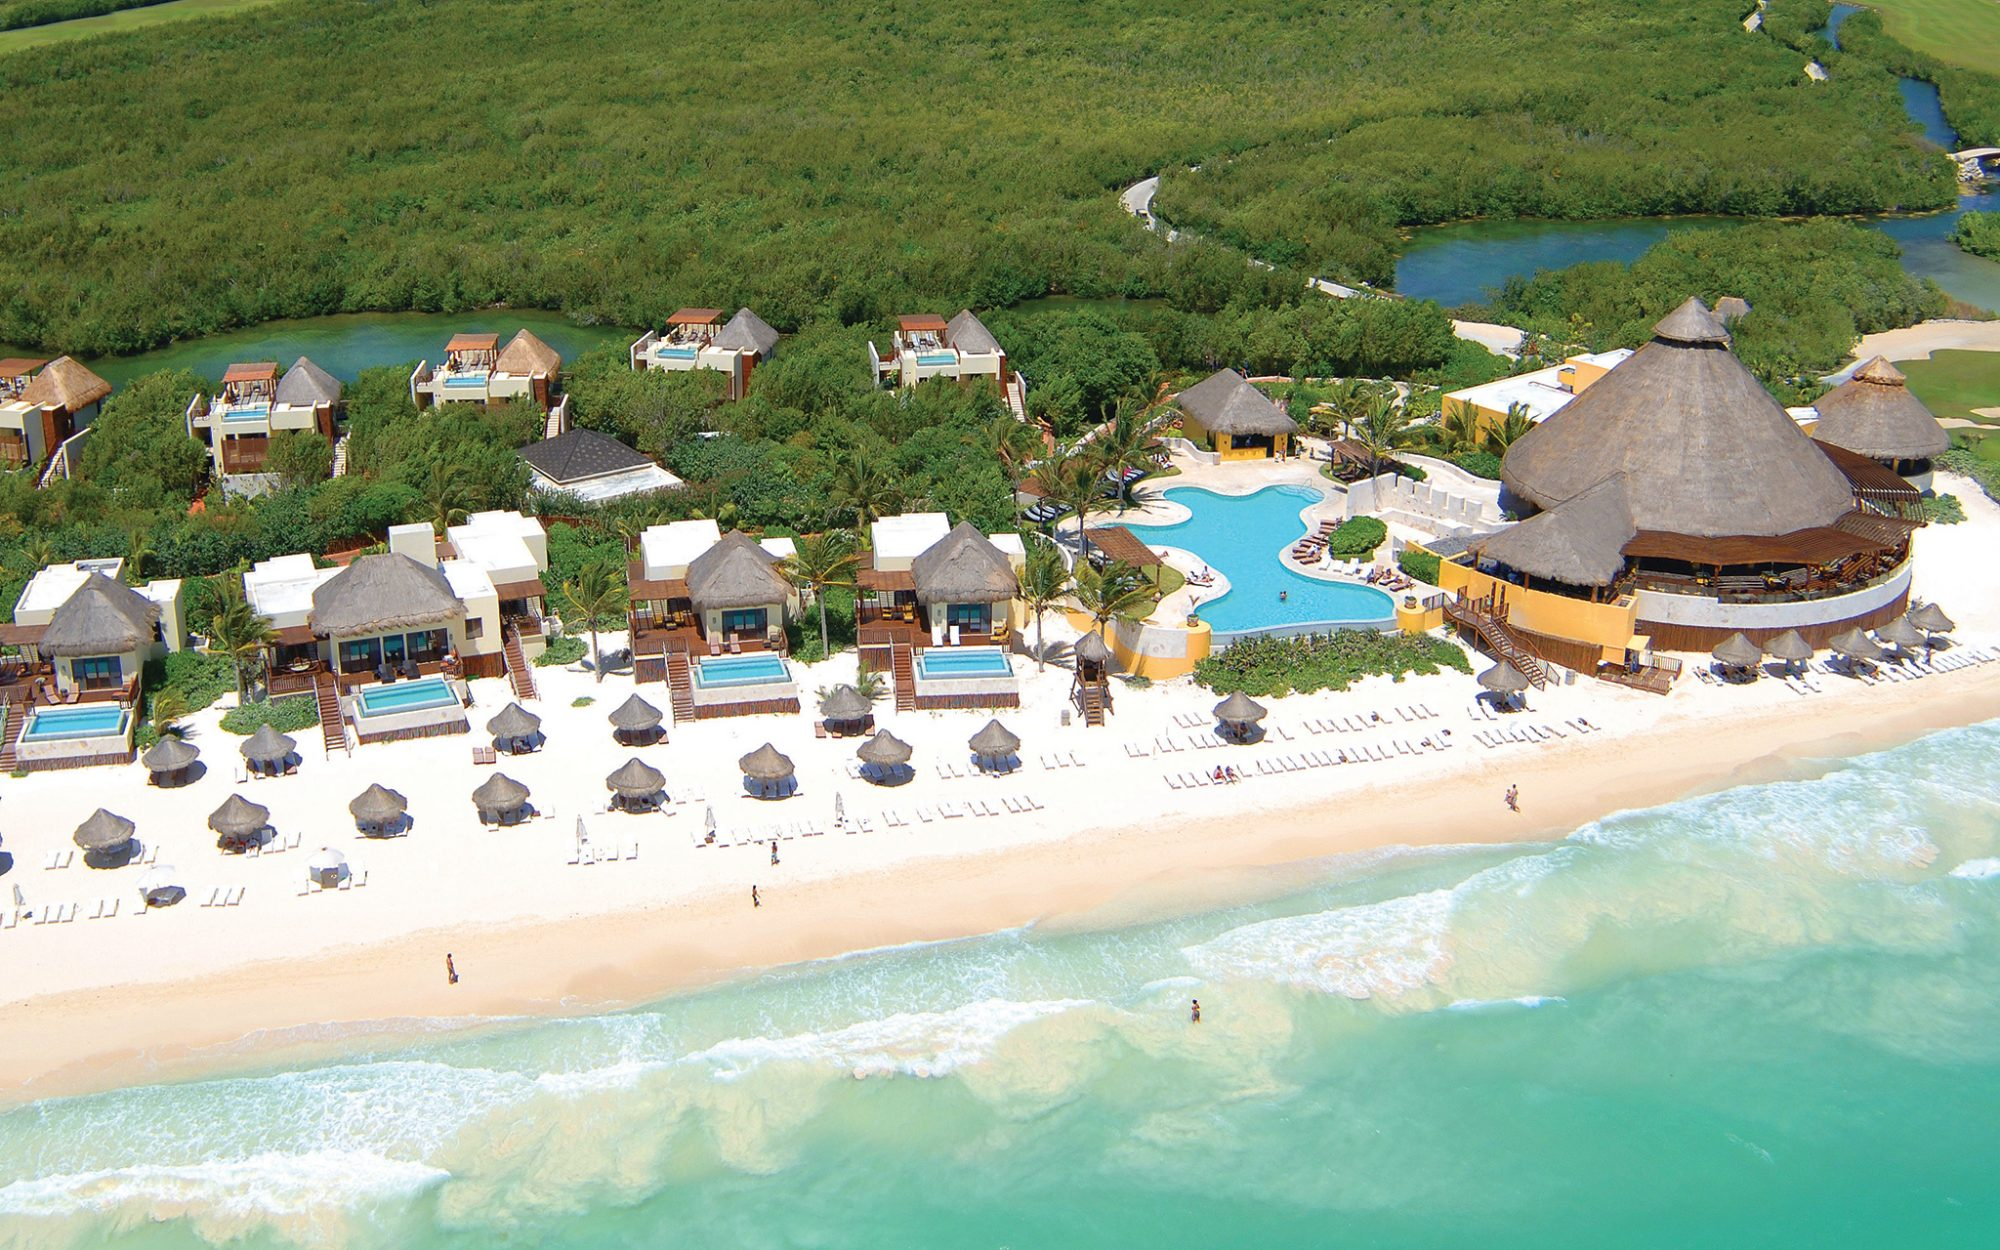 Best Family Beach Hotels: No. 21 The Fairmont Mayakoba, Riviera Maya, Mexico